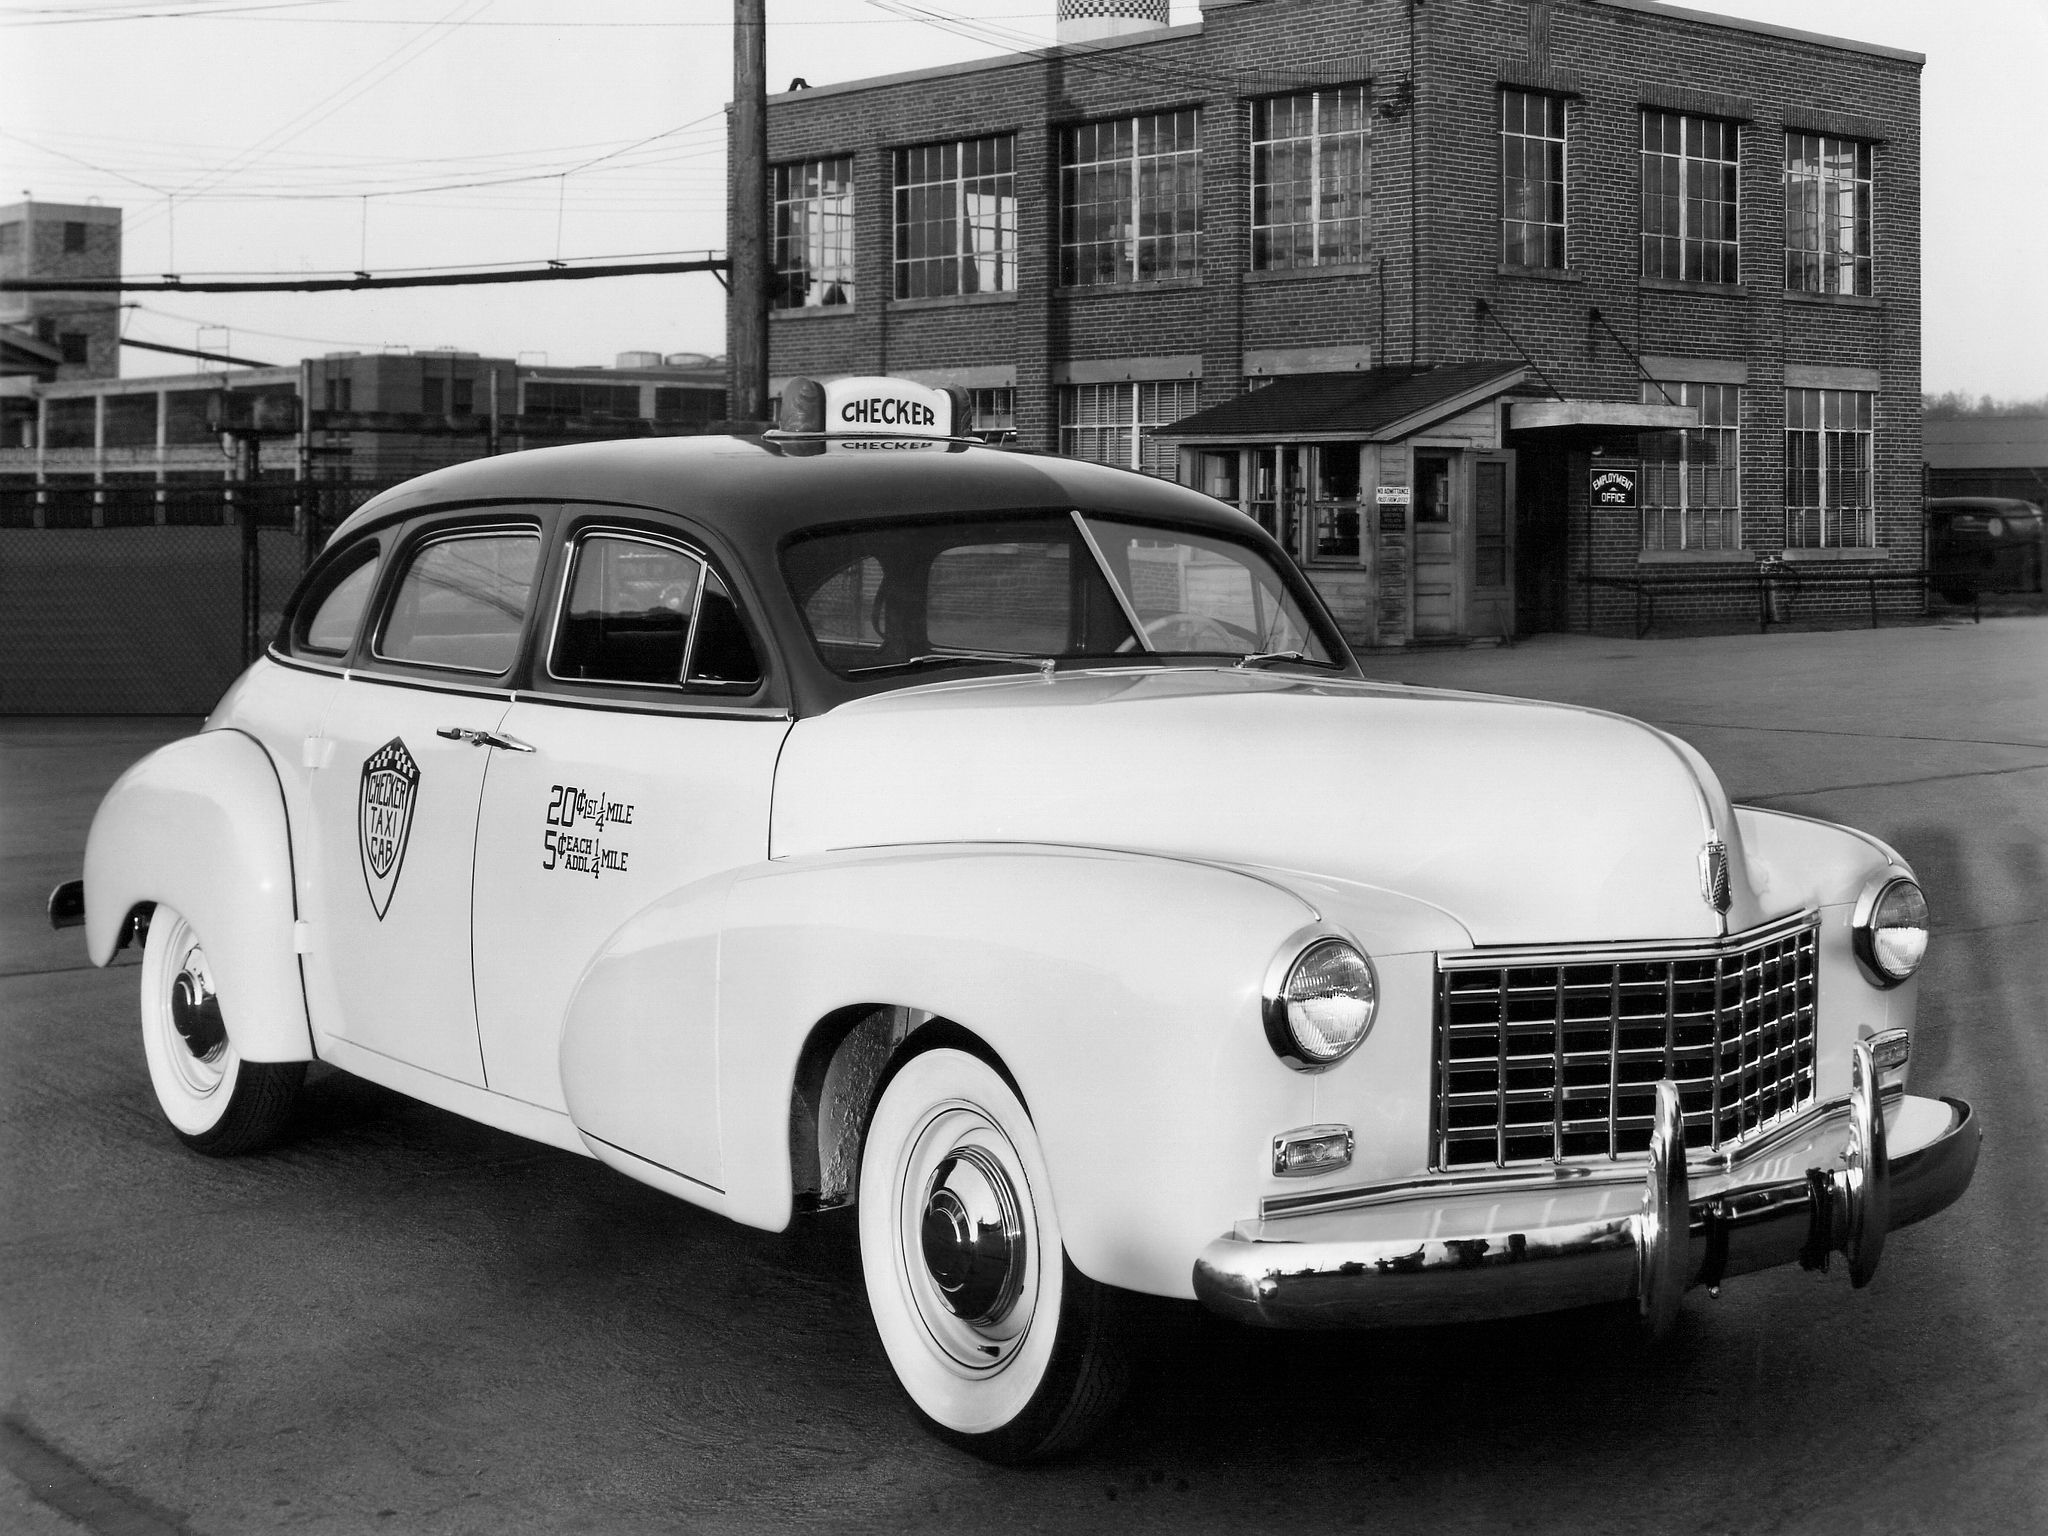 Checker Model Taxi Cab Taxi Pinterest Cars Cars Usa